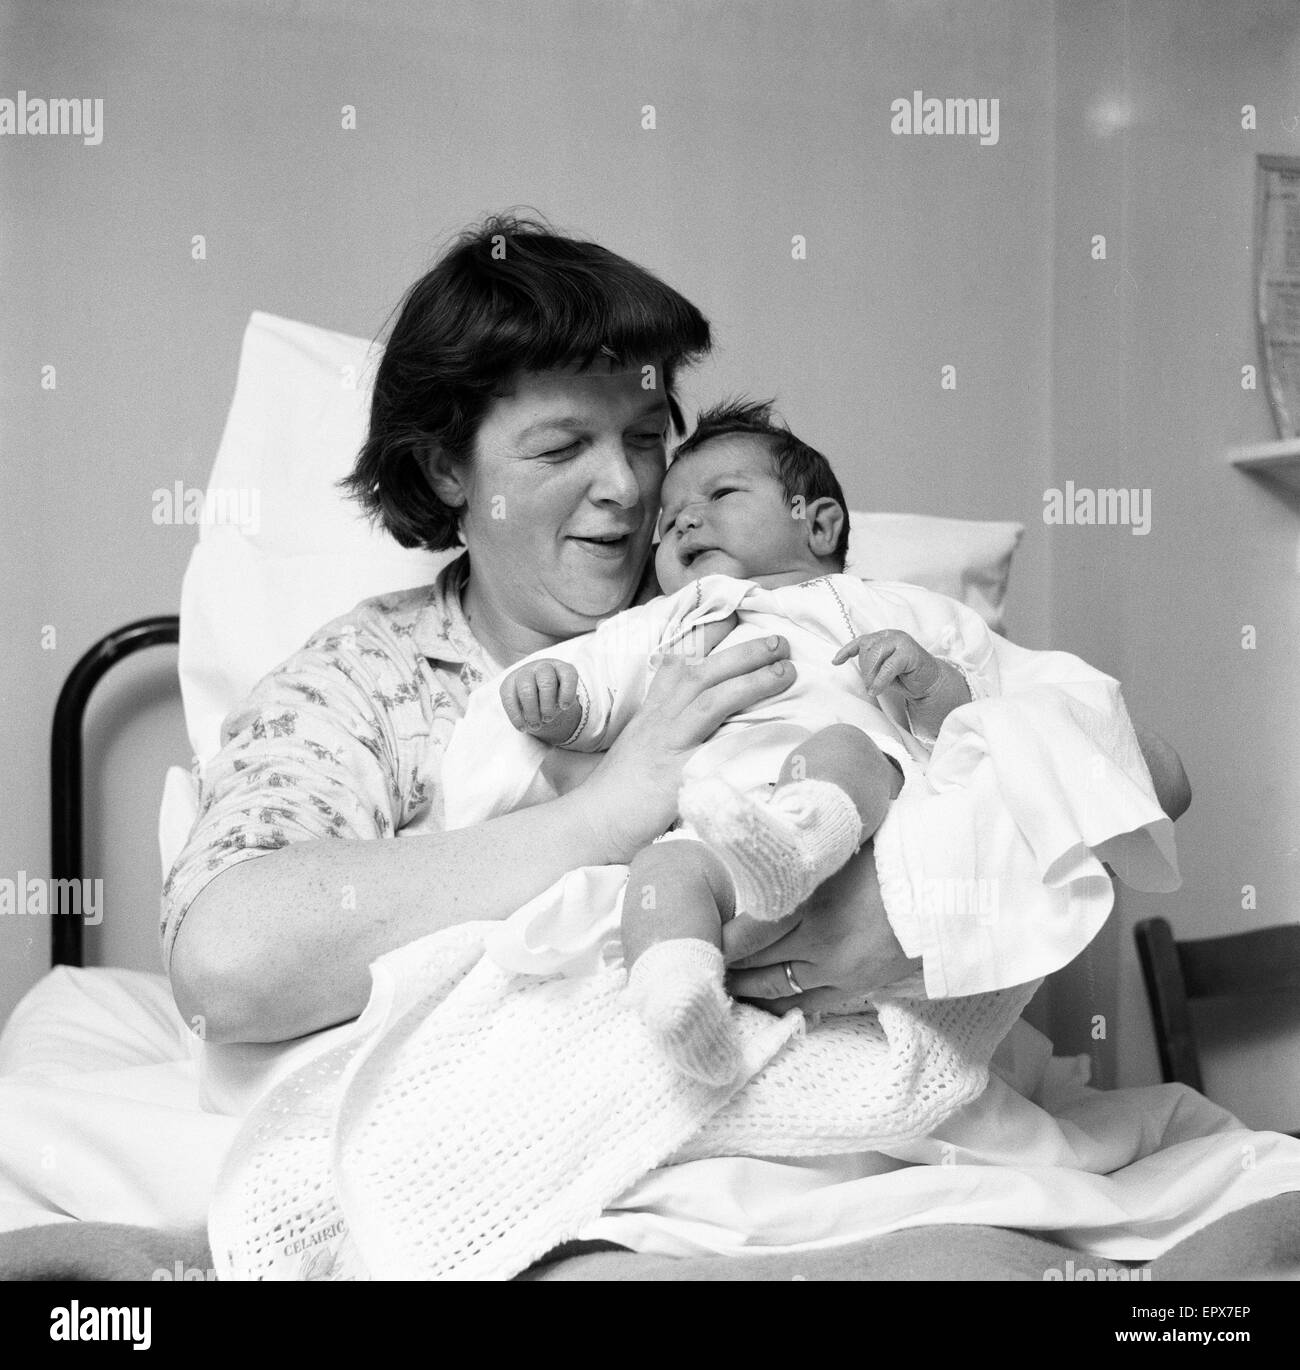 Annie Selina Pirie (34) from Lymington Hants, with her new born baby son Ian Keith Pirie, who weighed 15lbs 2ozs - Stock Image